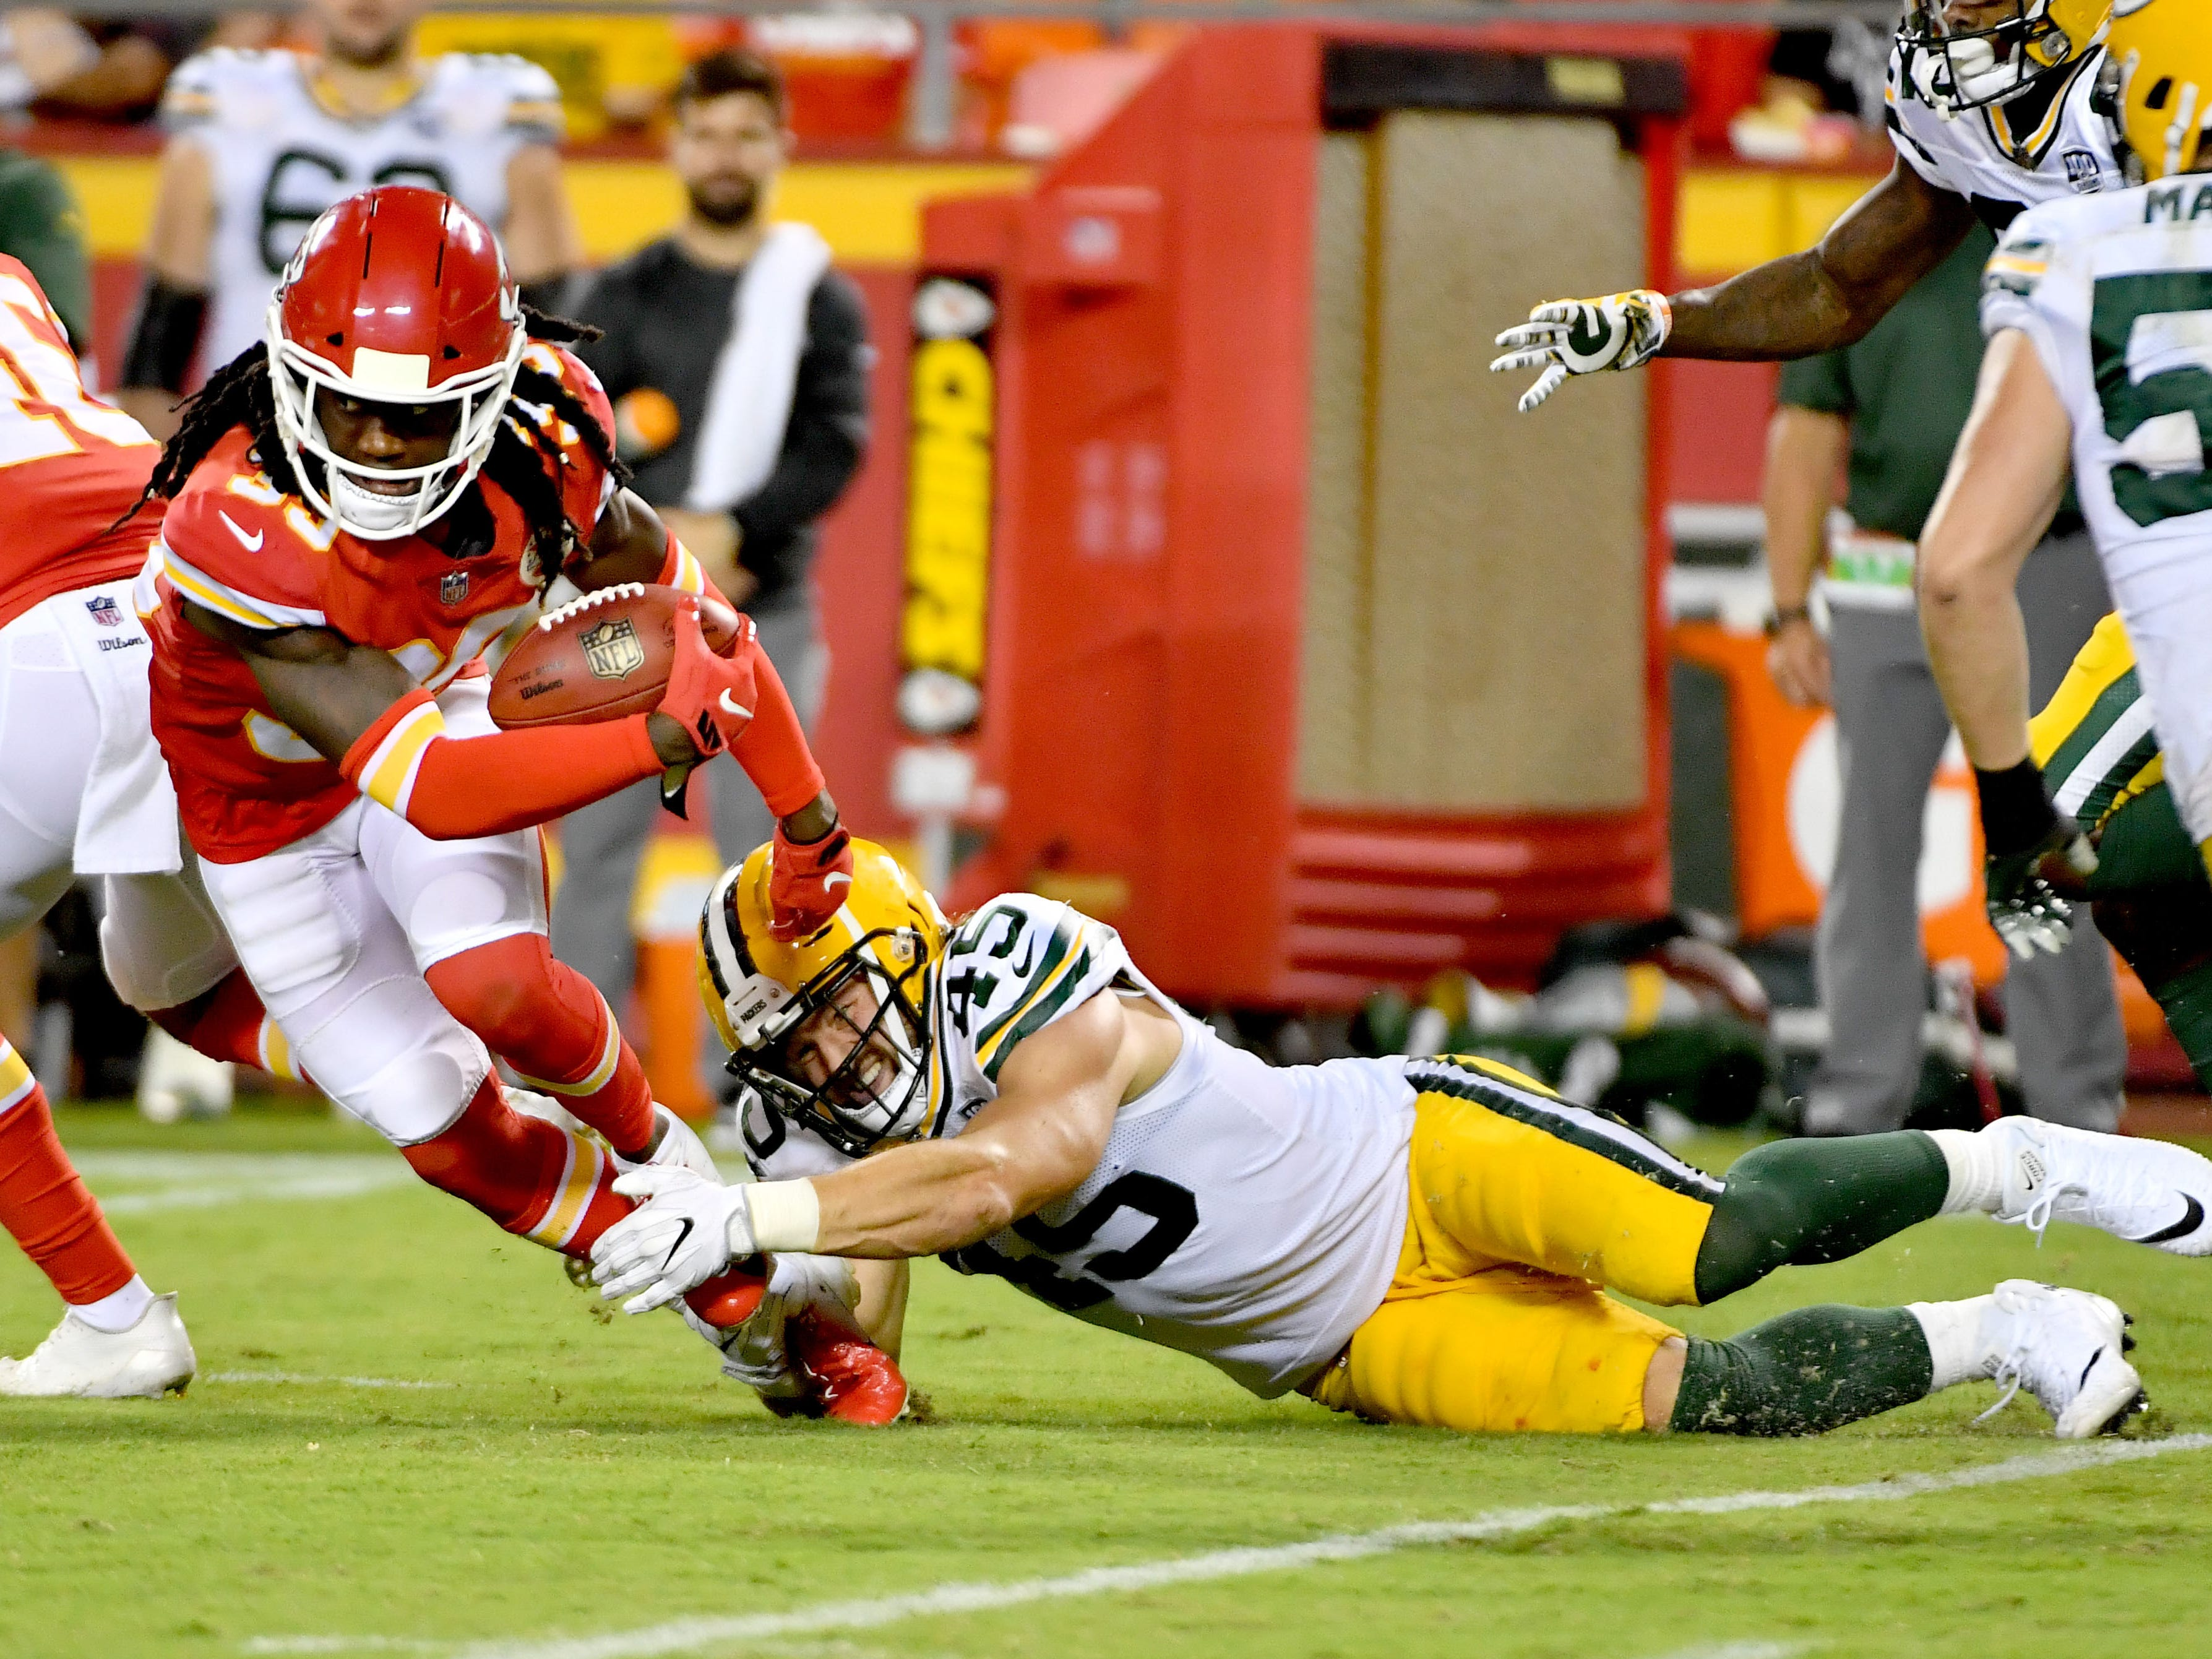 Aug 30, 2018; Kansas City, MO, USA; Kansas City Chiefs defensive back Tremon Smith (39) runs the ball and is tackled by Green Bay Packers linebacker Vince Biegel (45) during the second half at Arrowhead Stadium. Sports